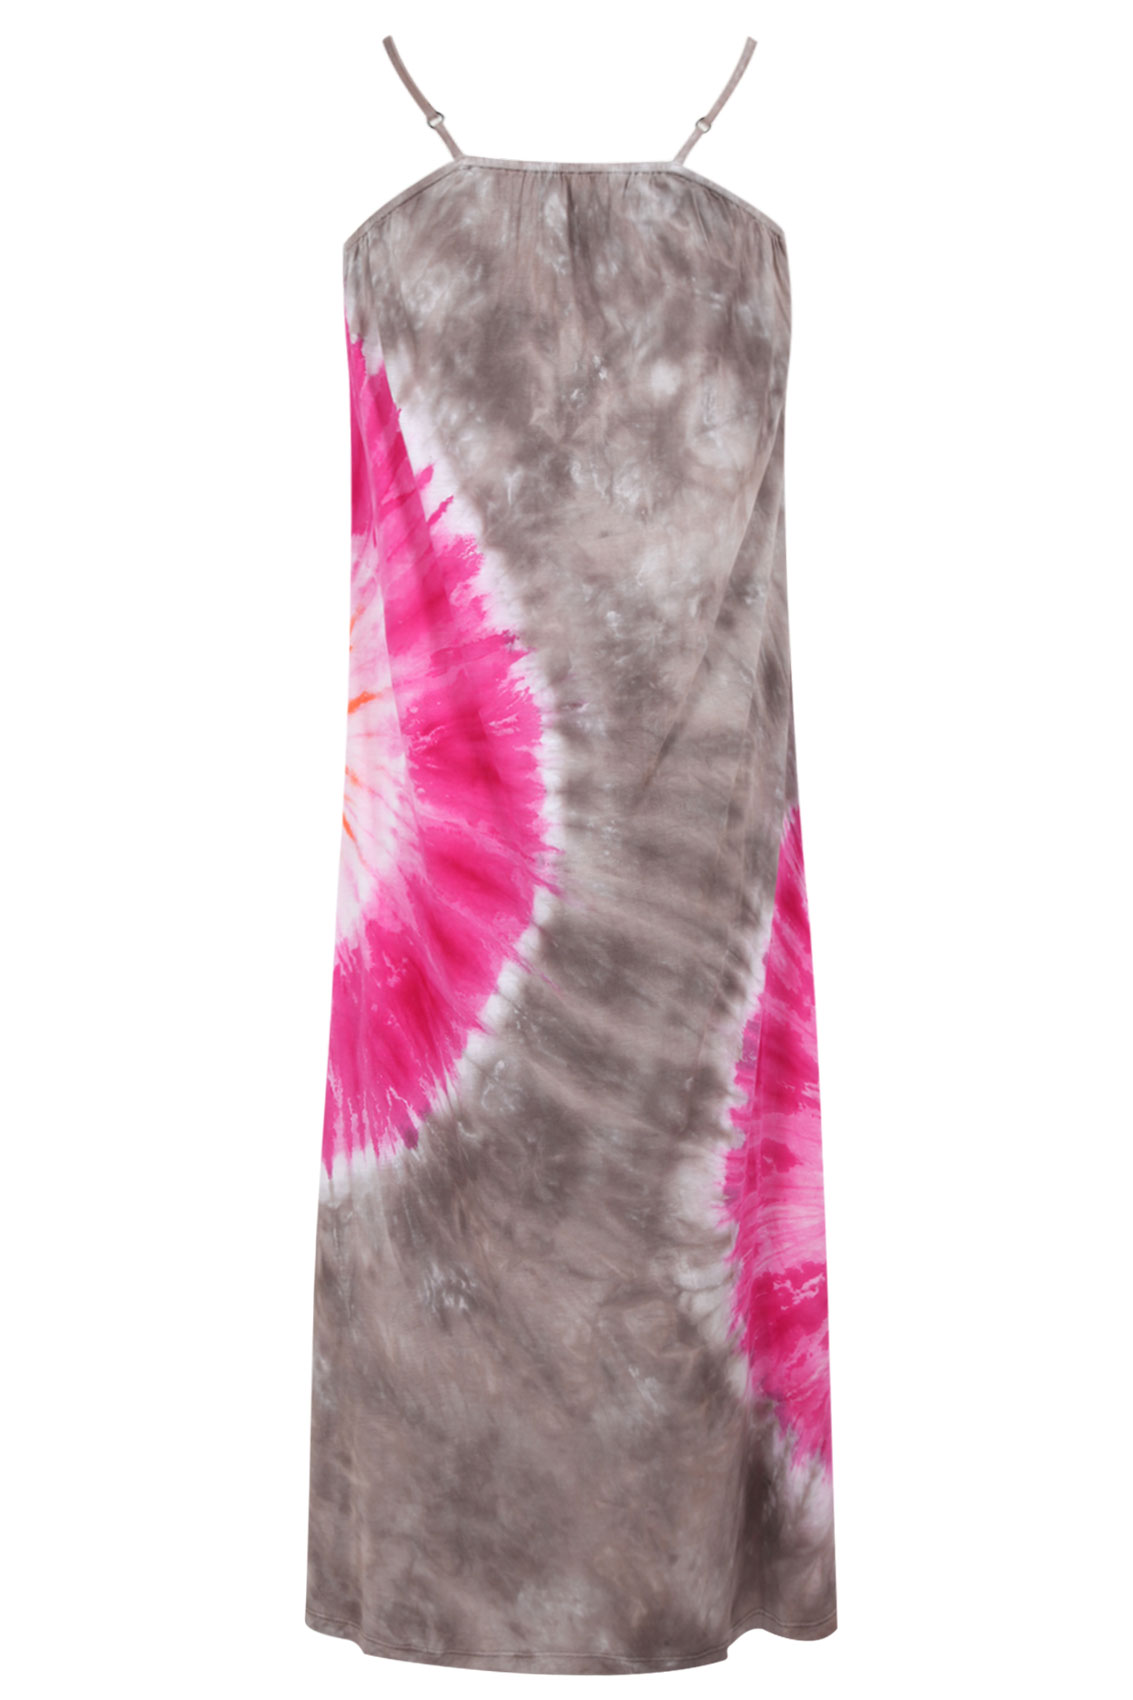 brown and pink tie dye sun burst strappy maxi dress plus size 14 16 18 20 22 24 26 28 30 32 34 36. Black Bedroom Furniture Sets. Home Design Ideas